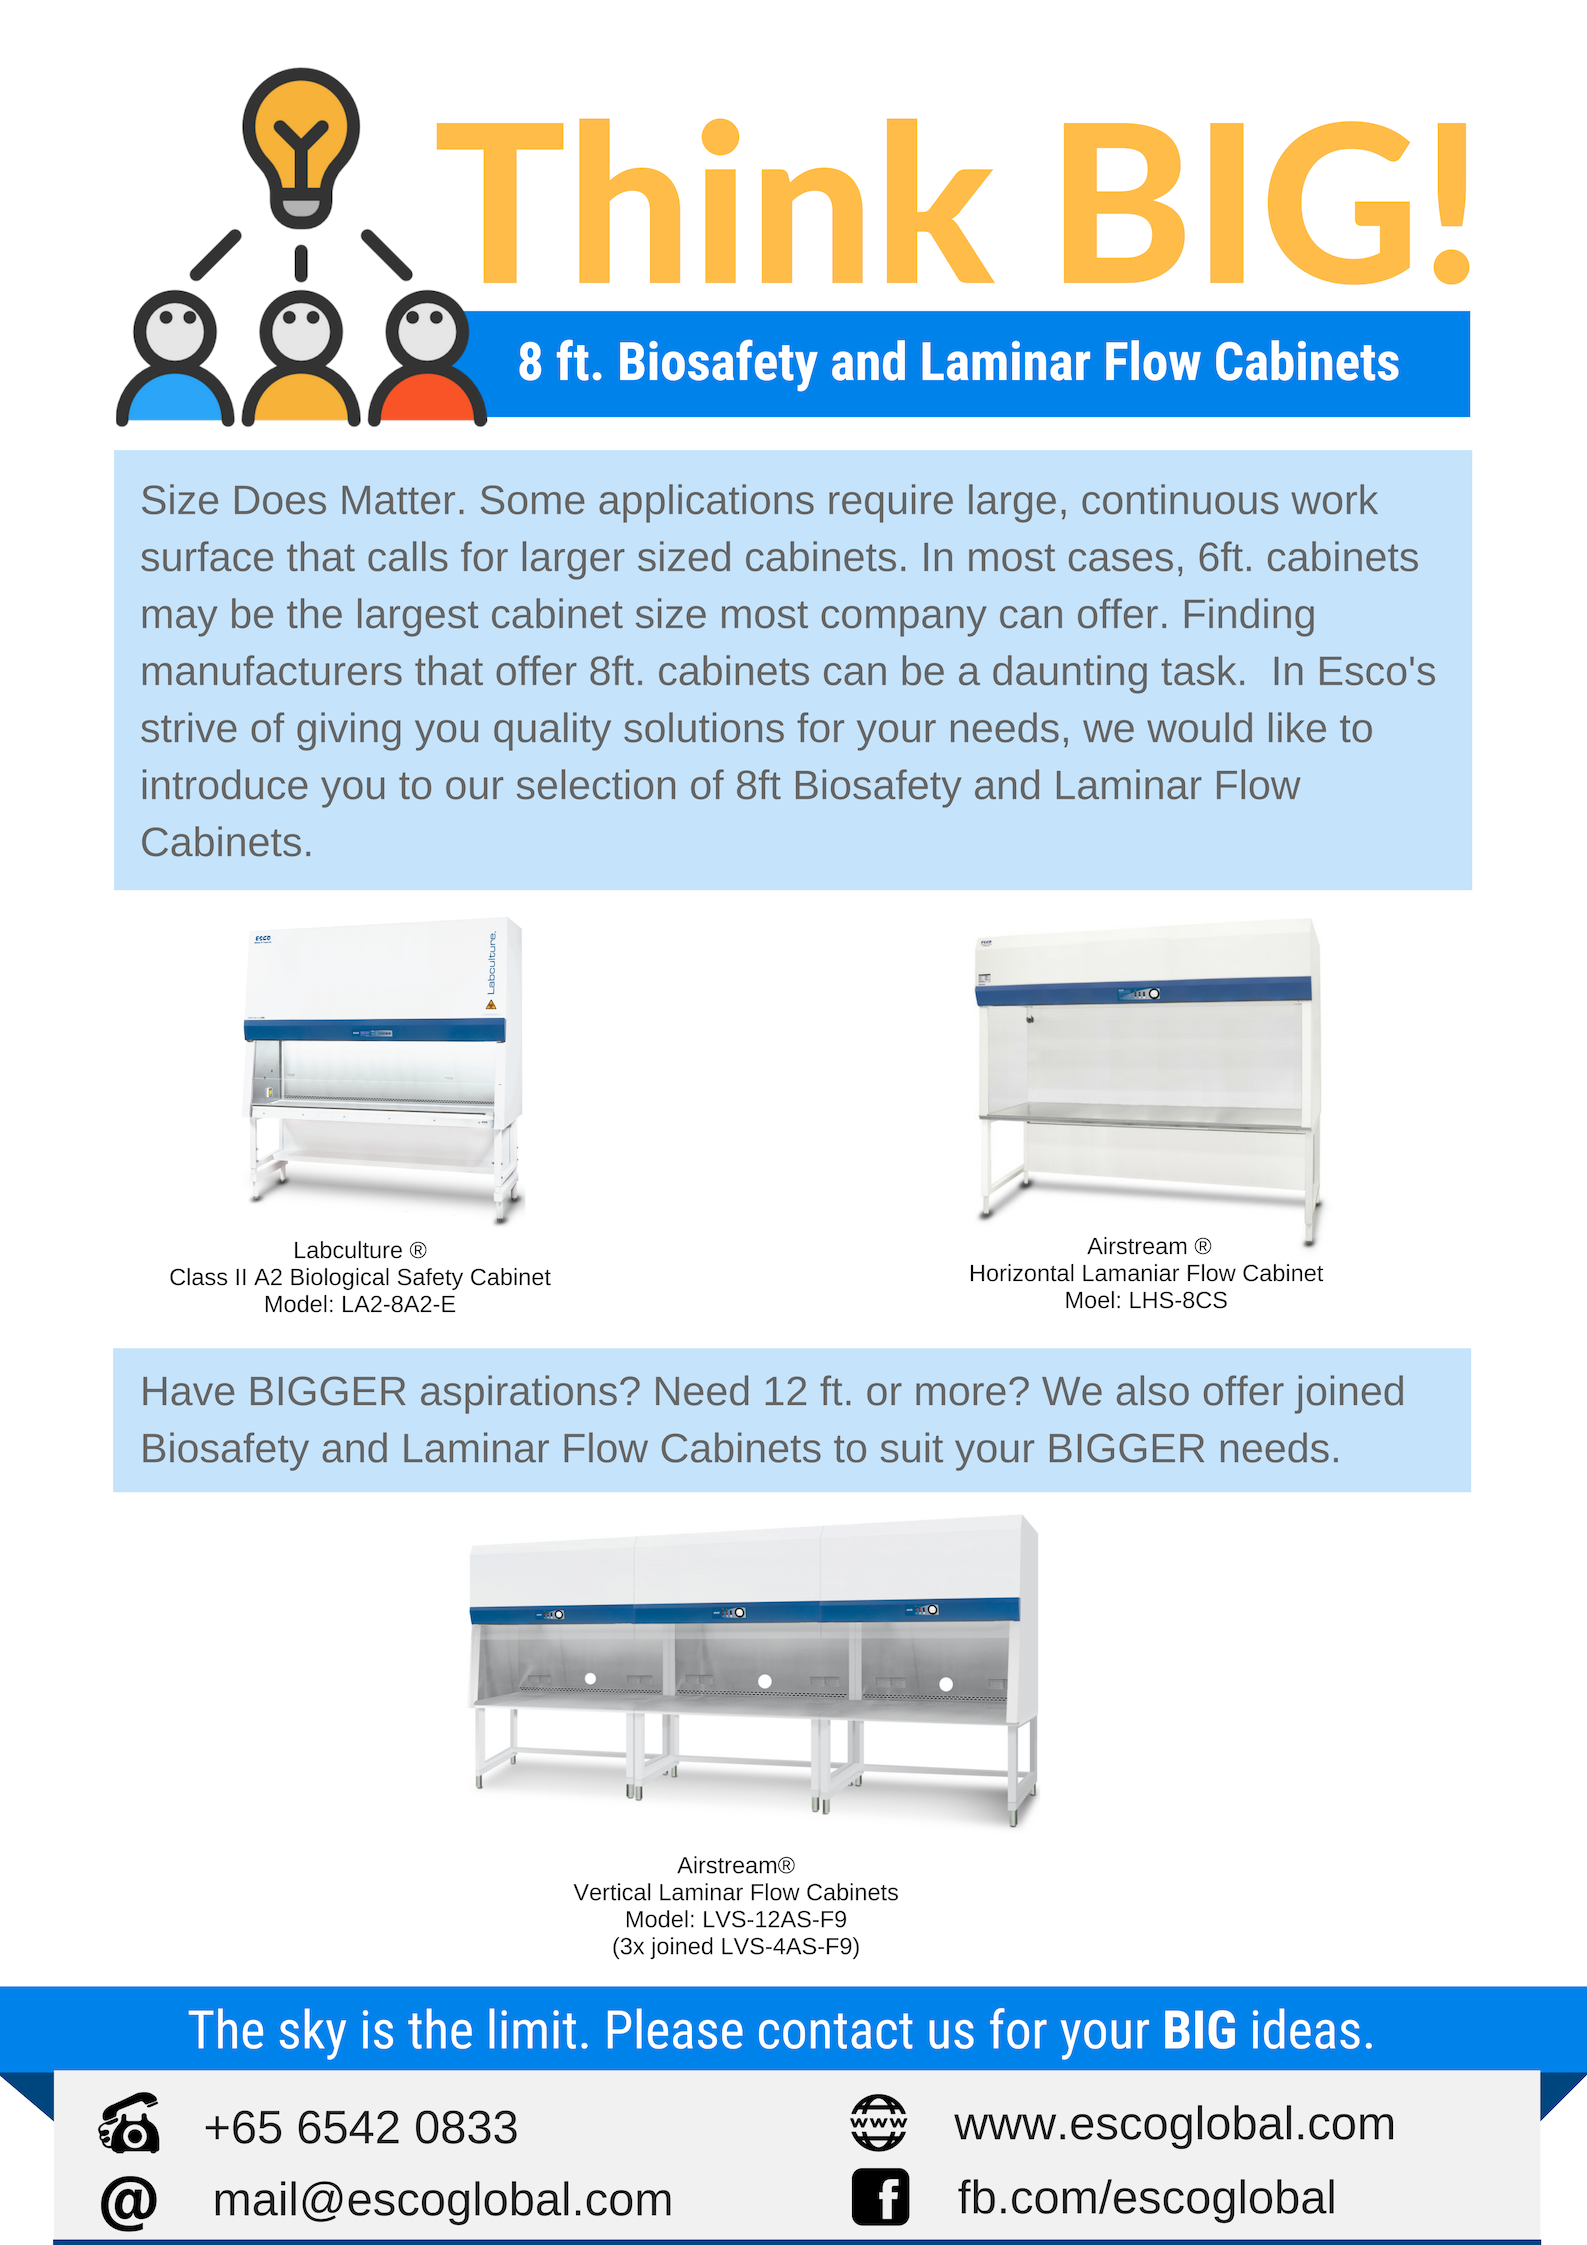 Does Size Matter Yes We Offer 8ft Biosafety And Laminar Flow Cabinets That Suits Your Laboratory Needs For More Information Visi Large Cabinet 8ft Cabinet